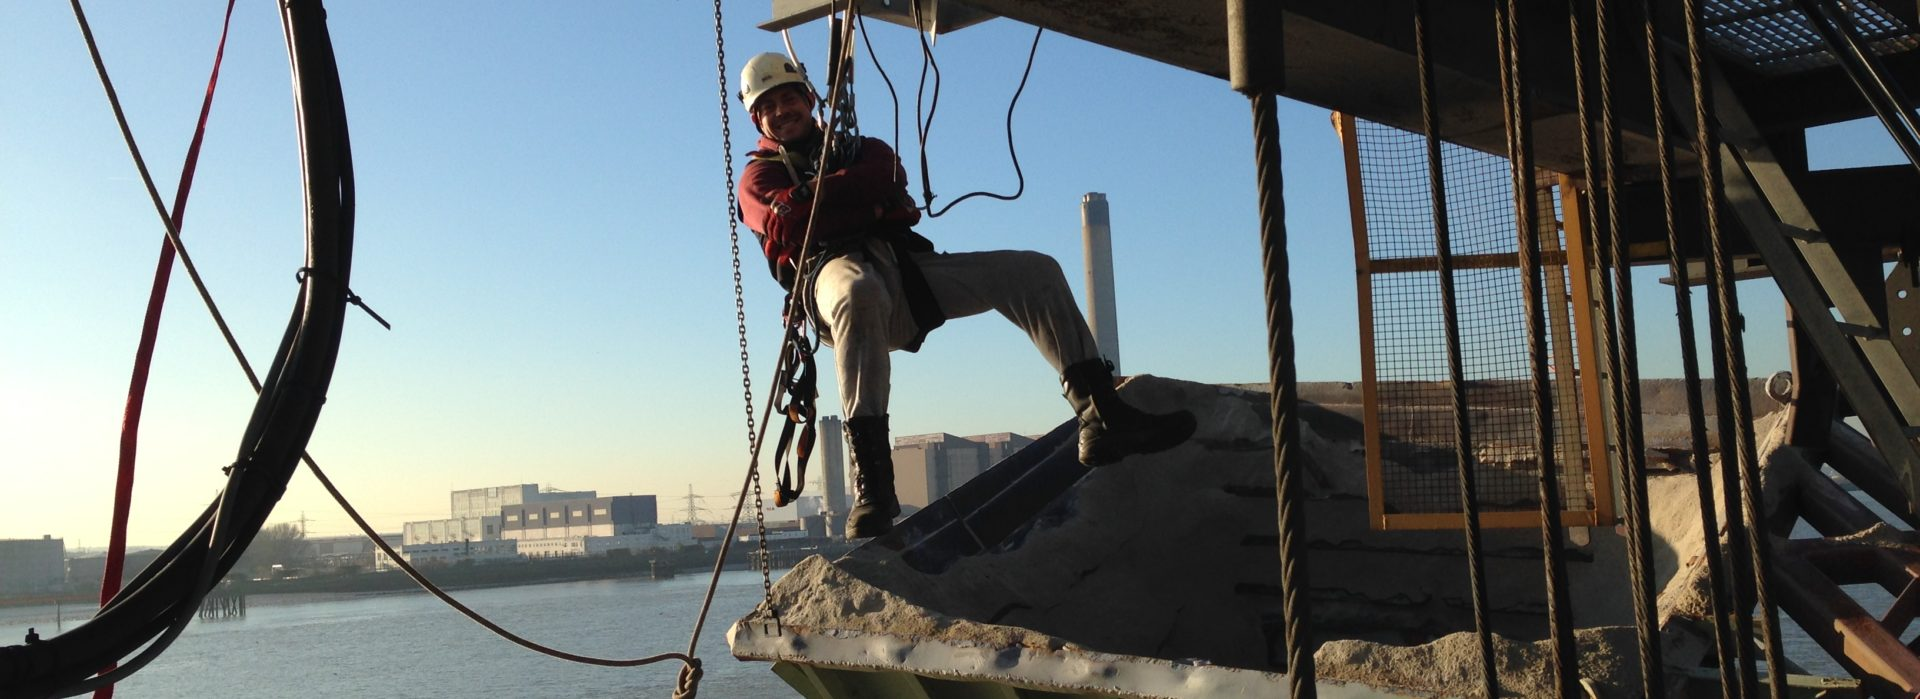 M J B Engineering